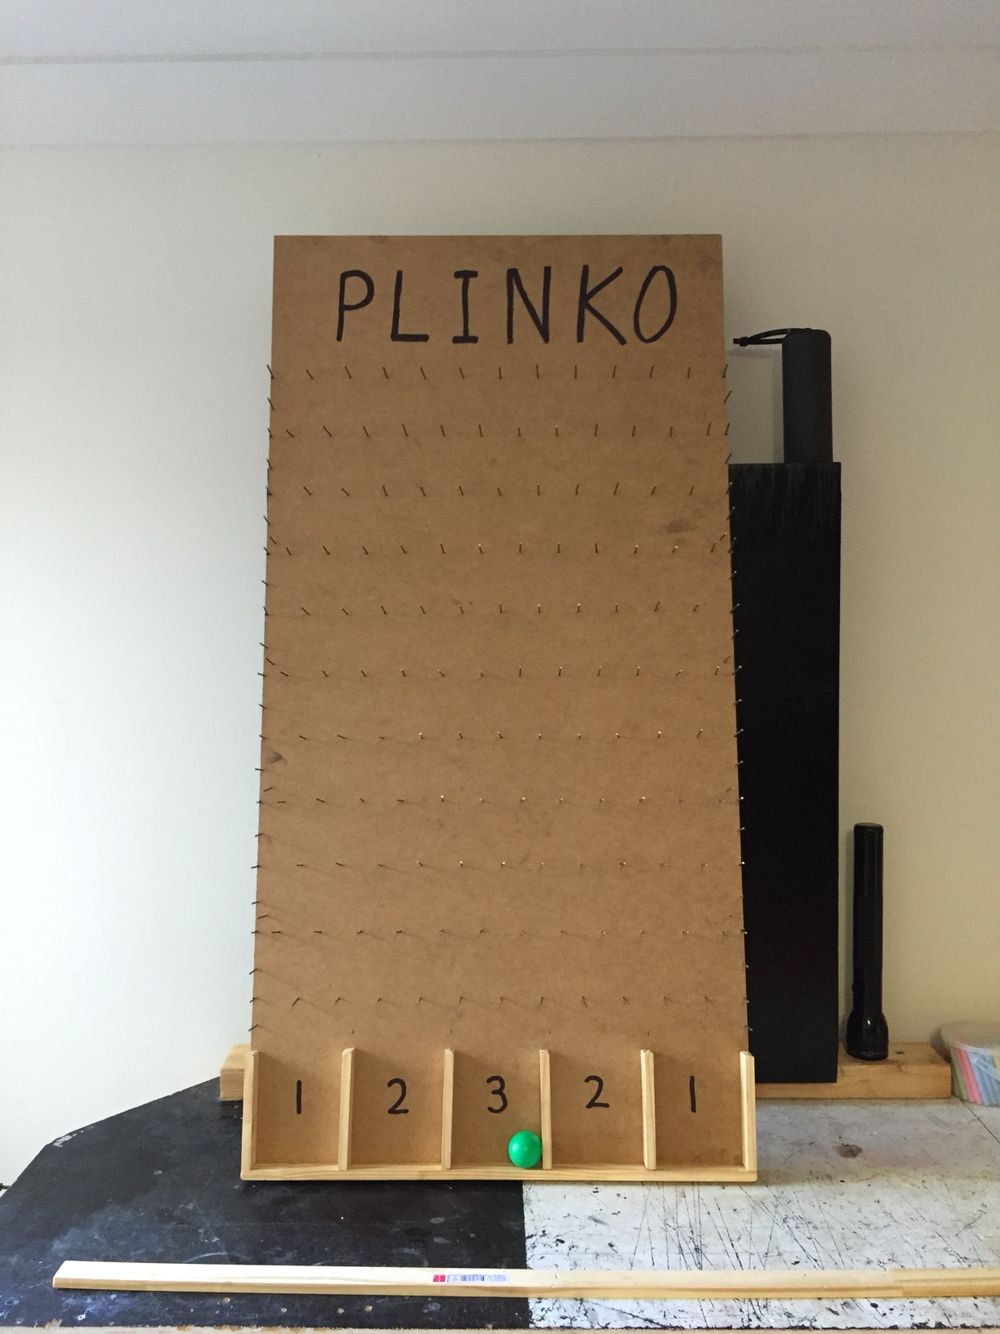 Plinko board diy game for circuscarnival party cool diy plinko board diy game for circuscarnival party solutioingenieria Choice Image